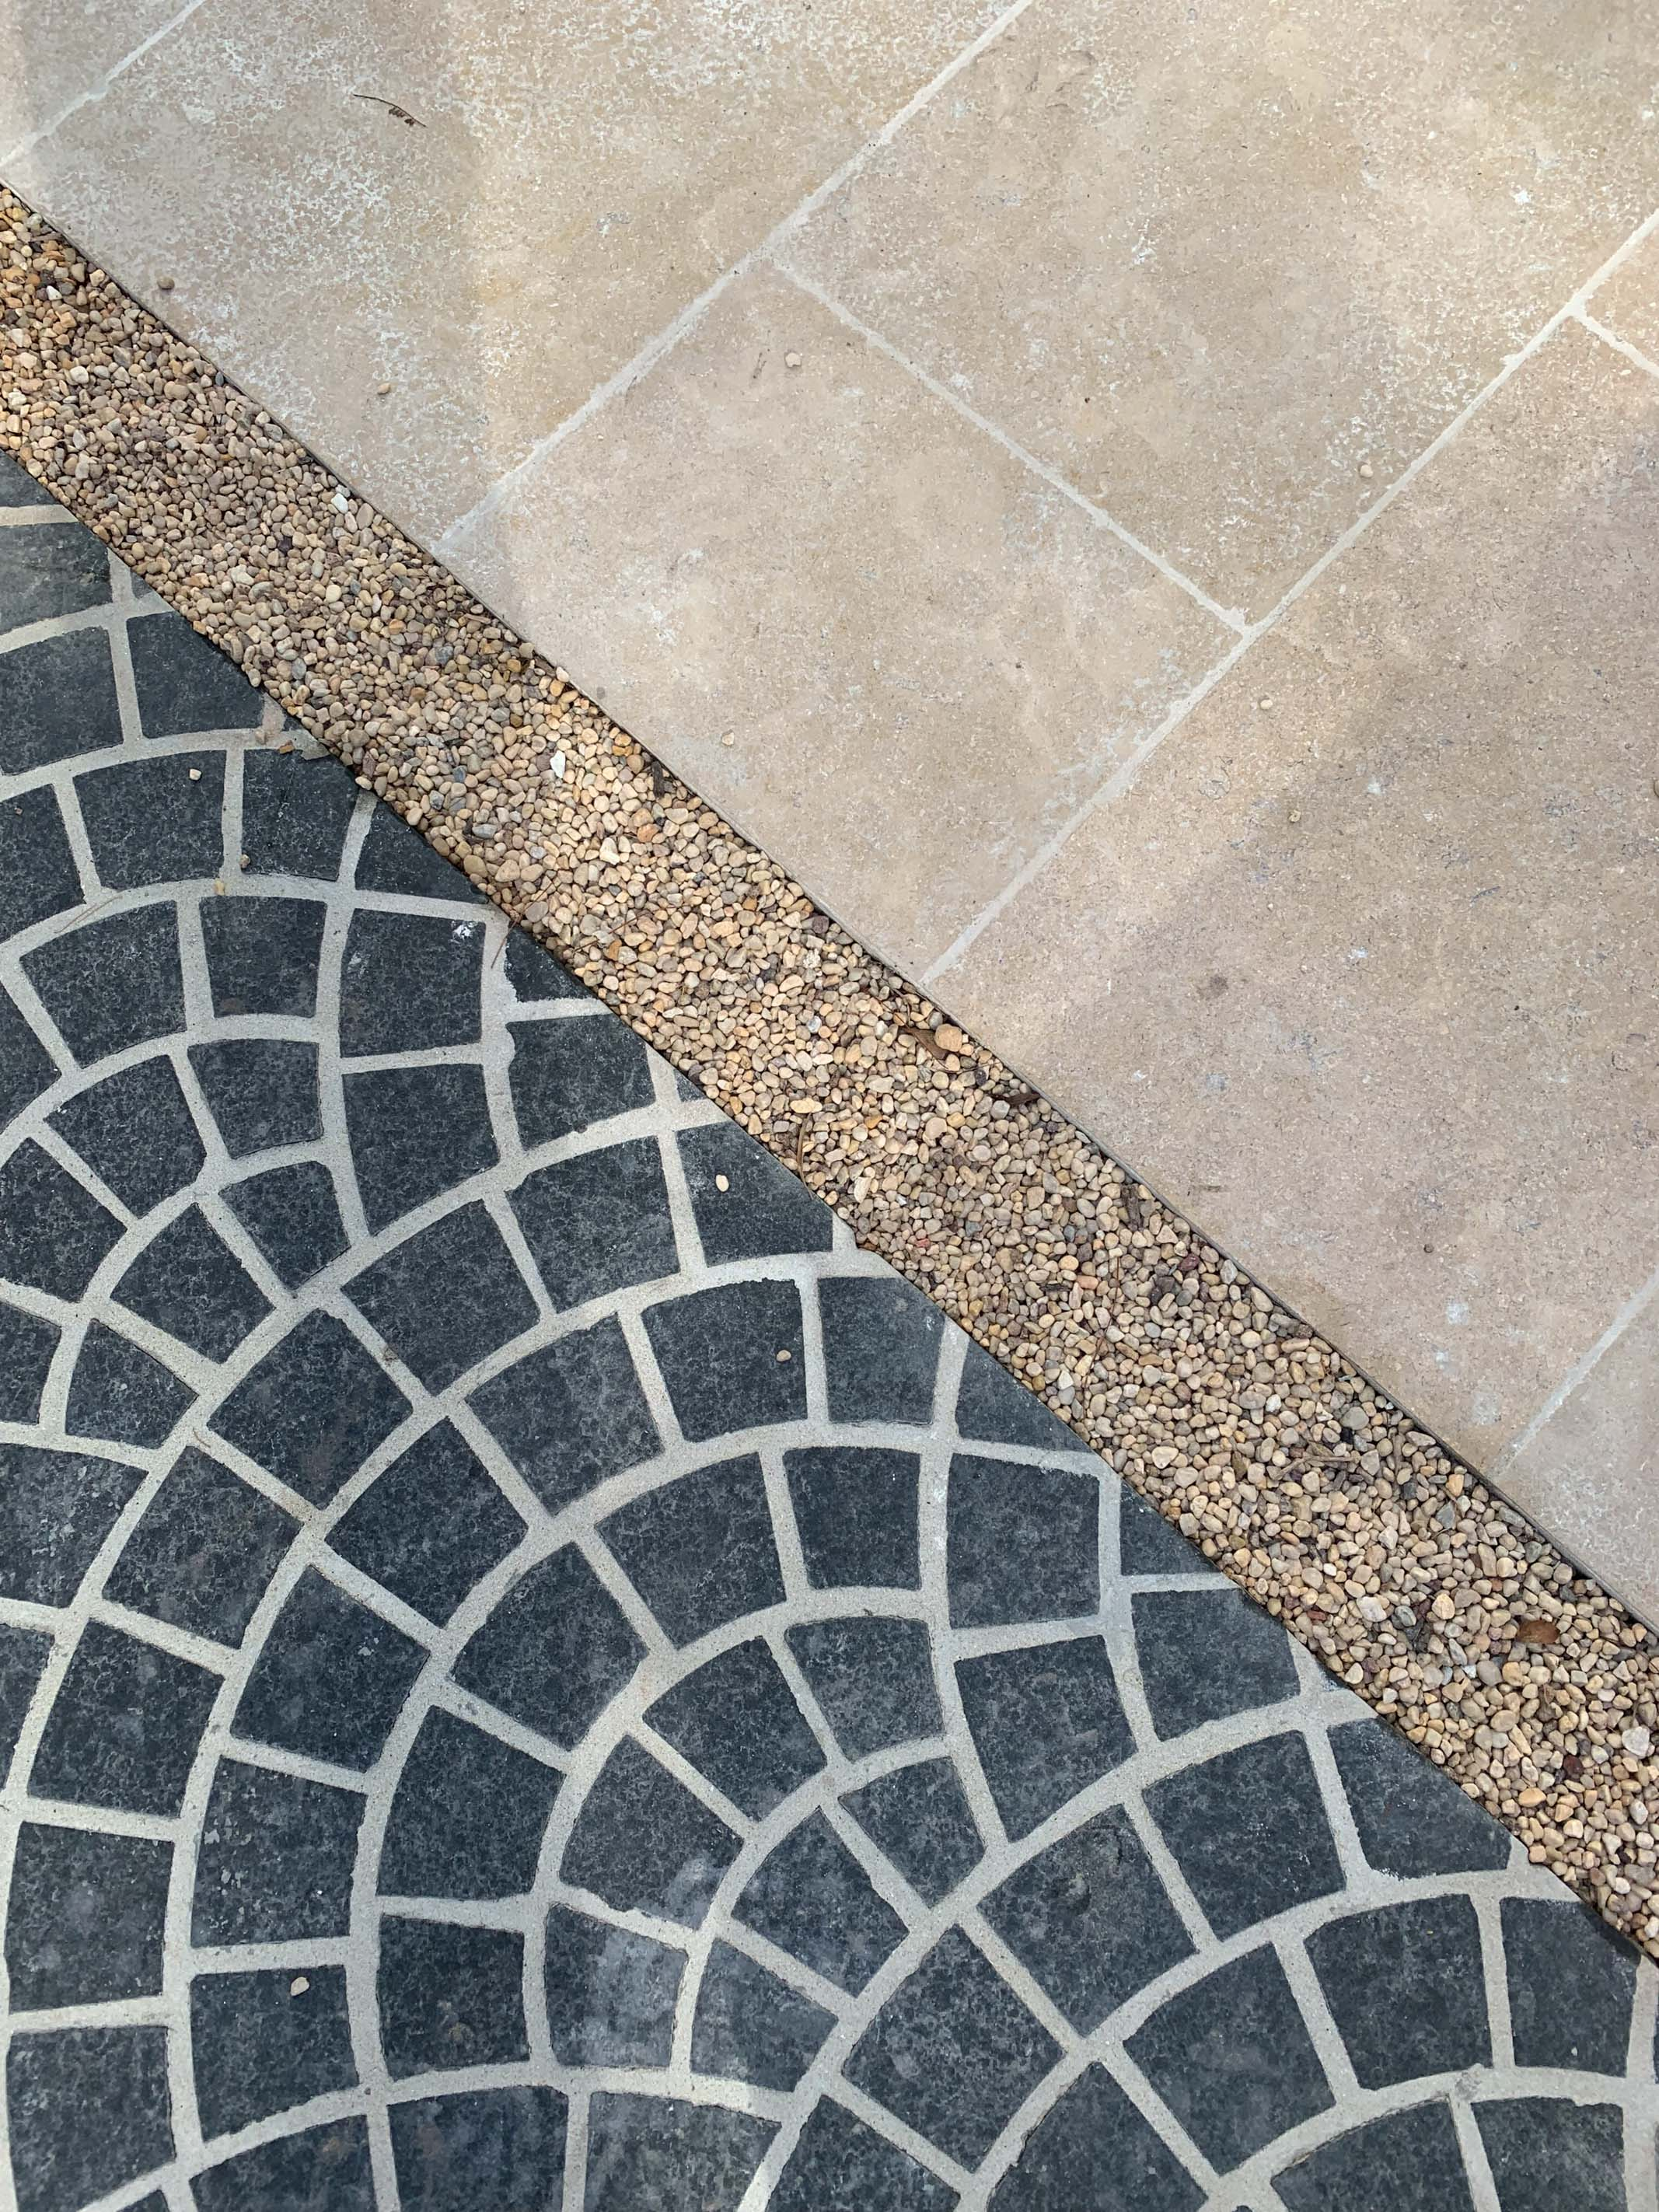 Blog hero-article-images what-is-natural-stone